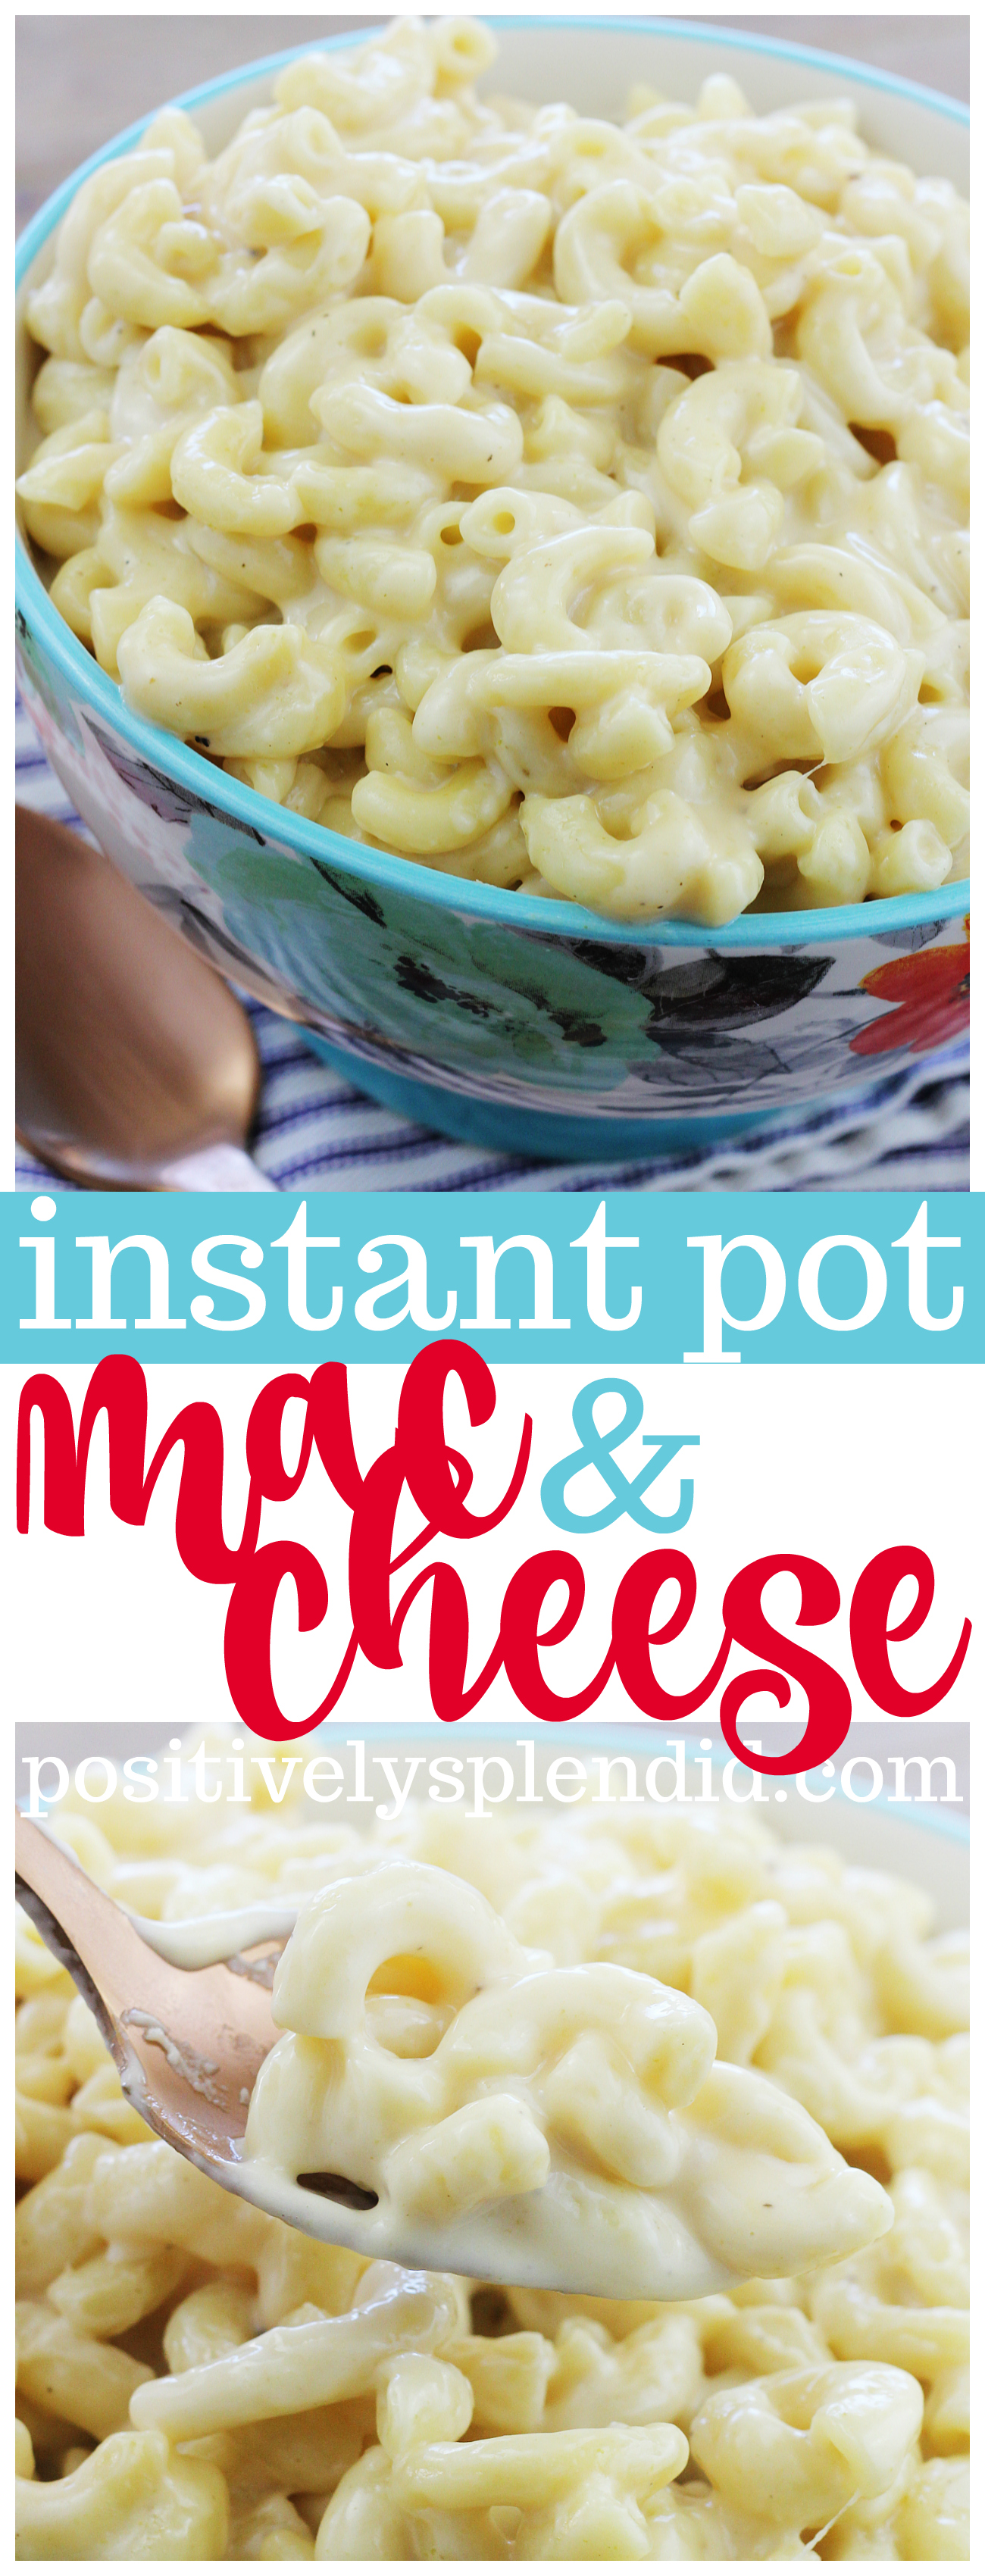 Instant Pot Mac and Cheese Recipe - No processed cheese required!